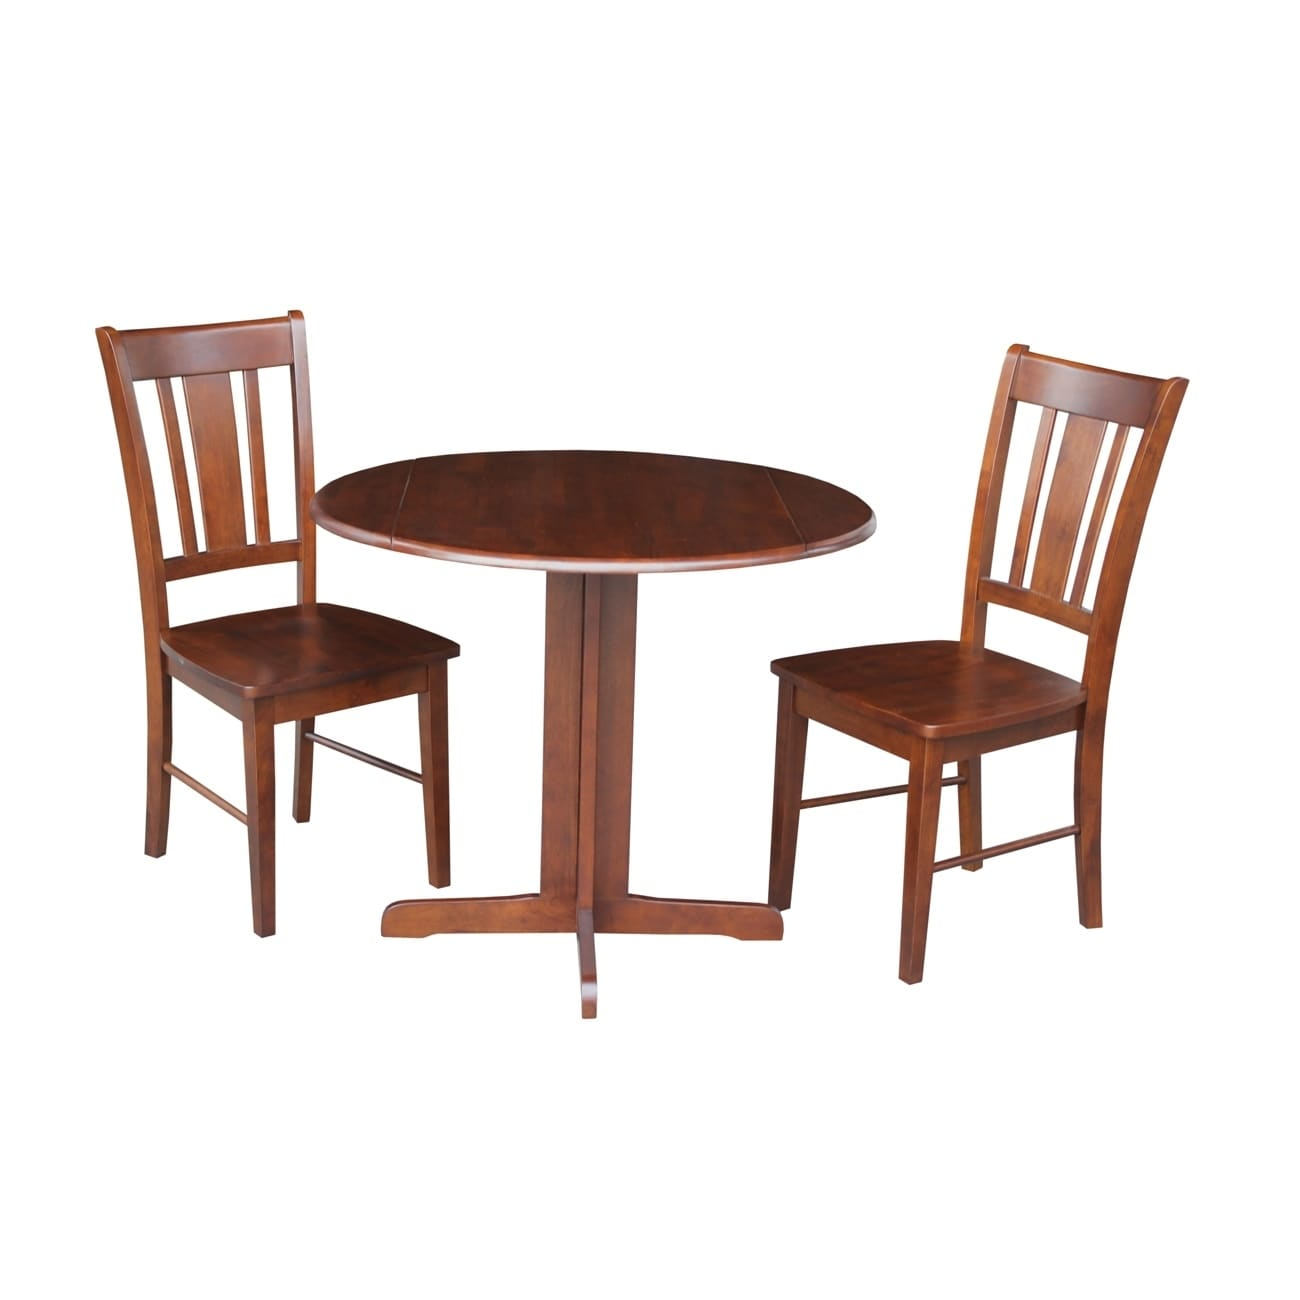 International Concepts Dual Drop Leaf 36 Inch Dining Table With Two San Remo Chairs In Espresso Free Shipping Today 17279248